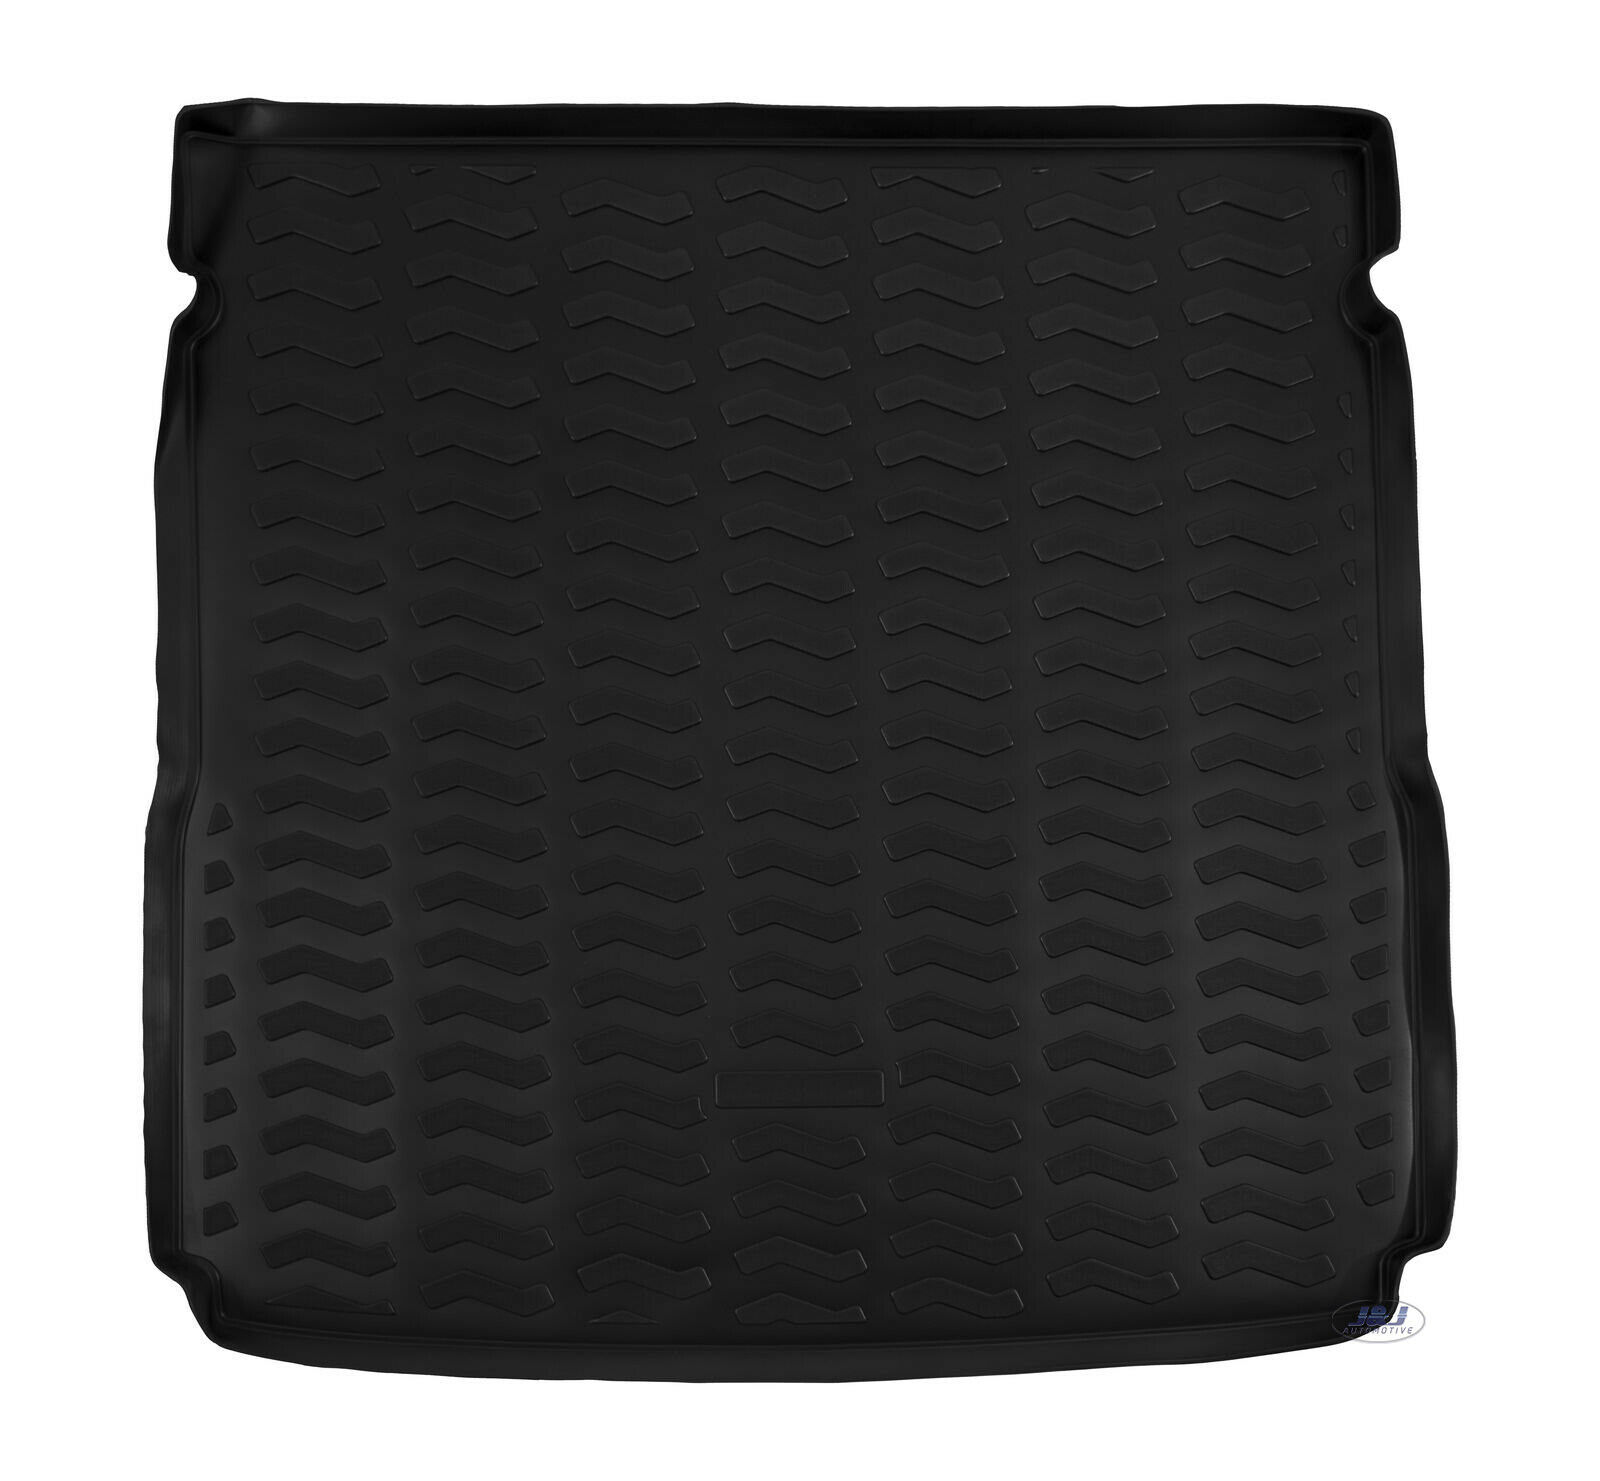 Simply Car Tailored Fit Heavy Duty Durable Black Boot Liner Tray Mat Protector for VW Passat Estate 2015 on